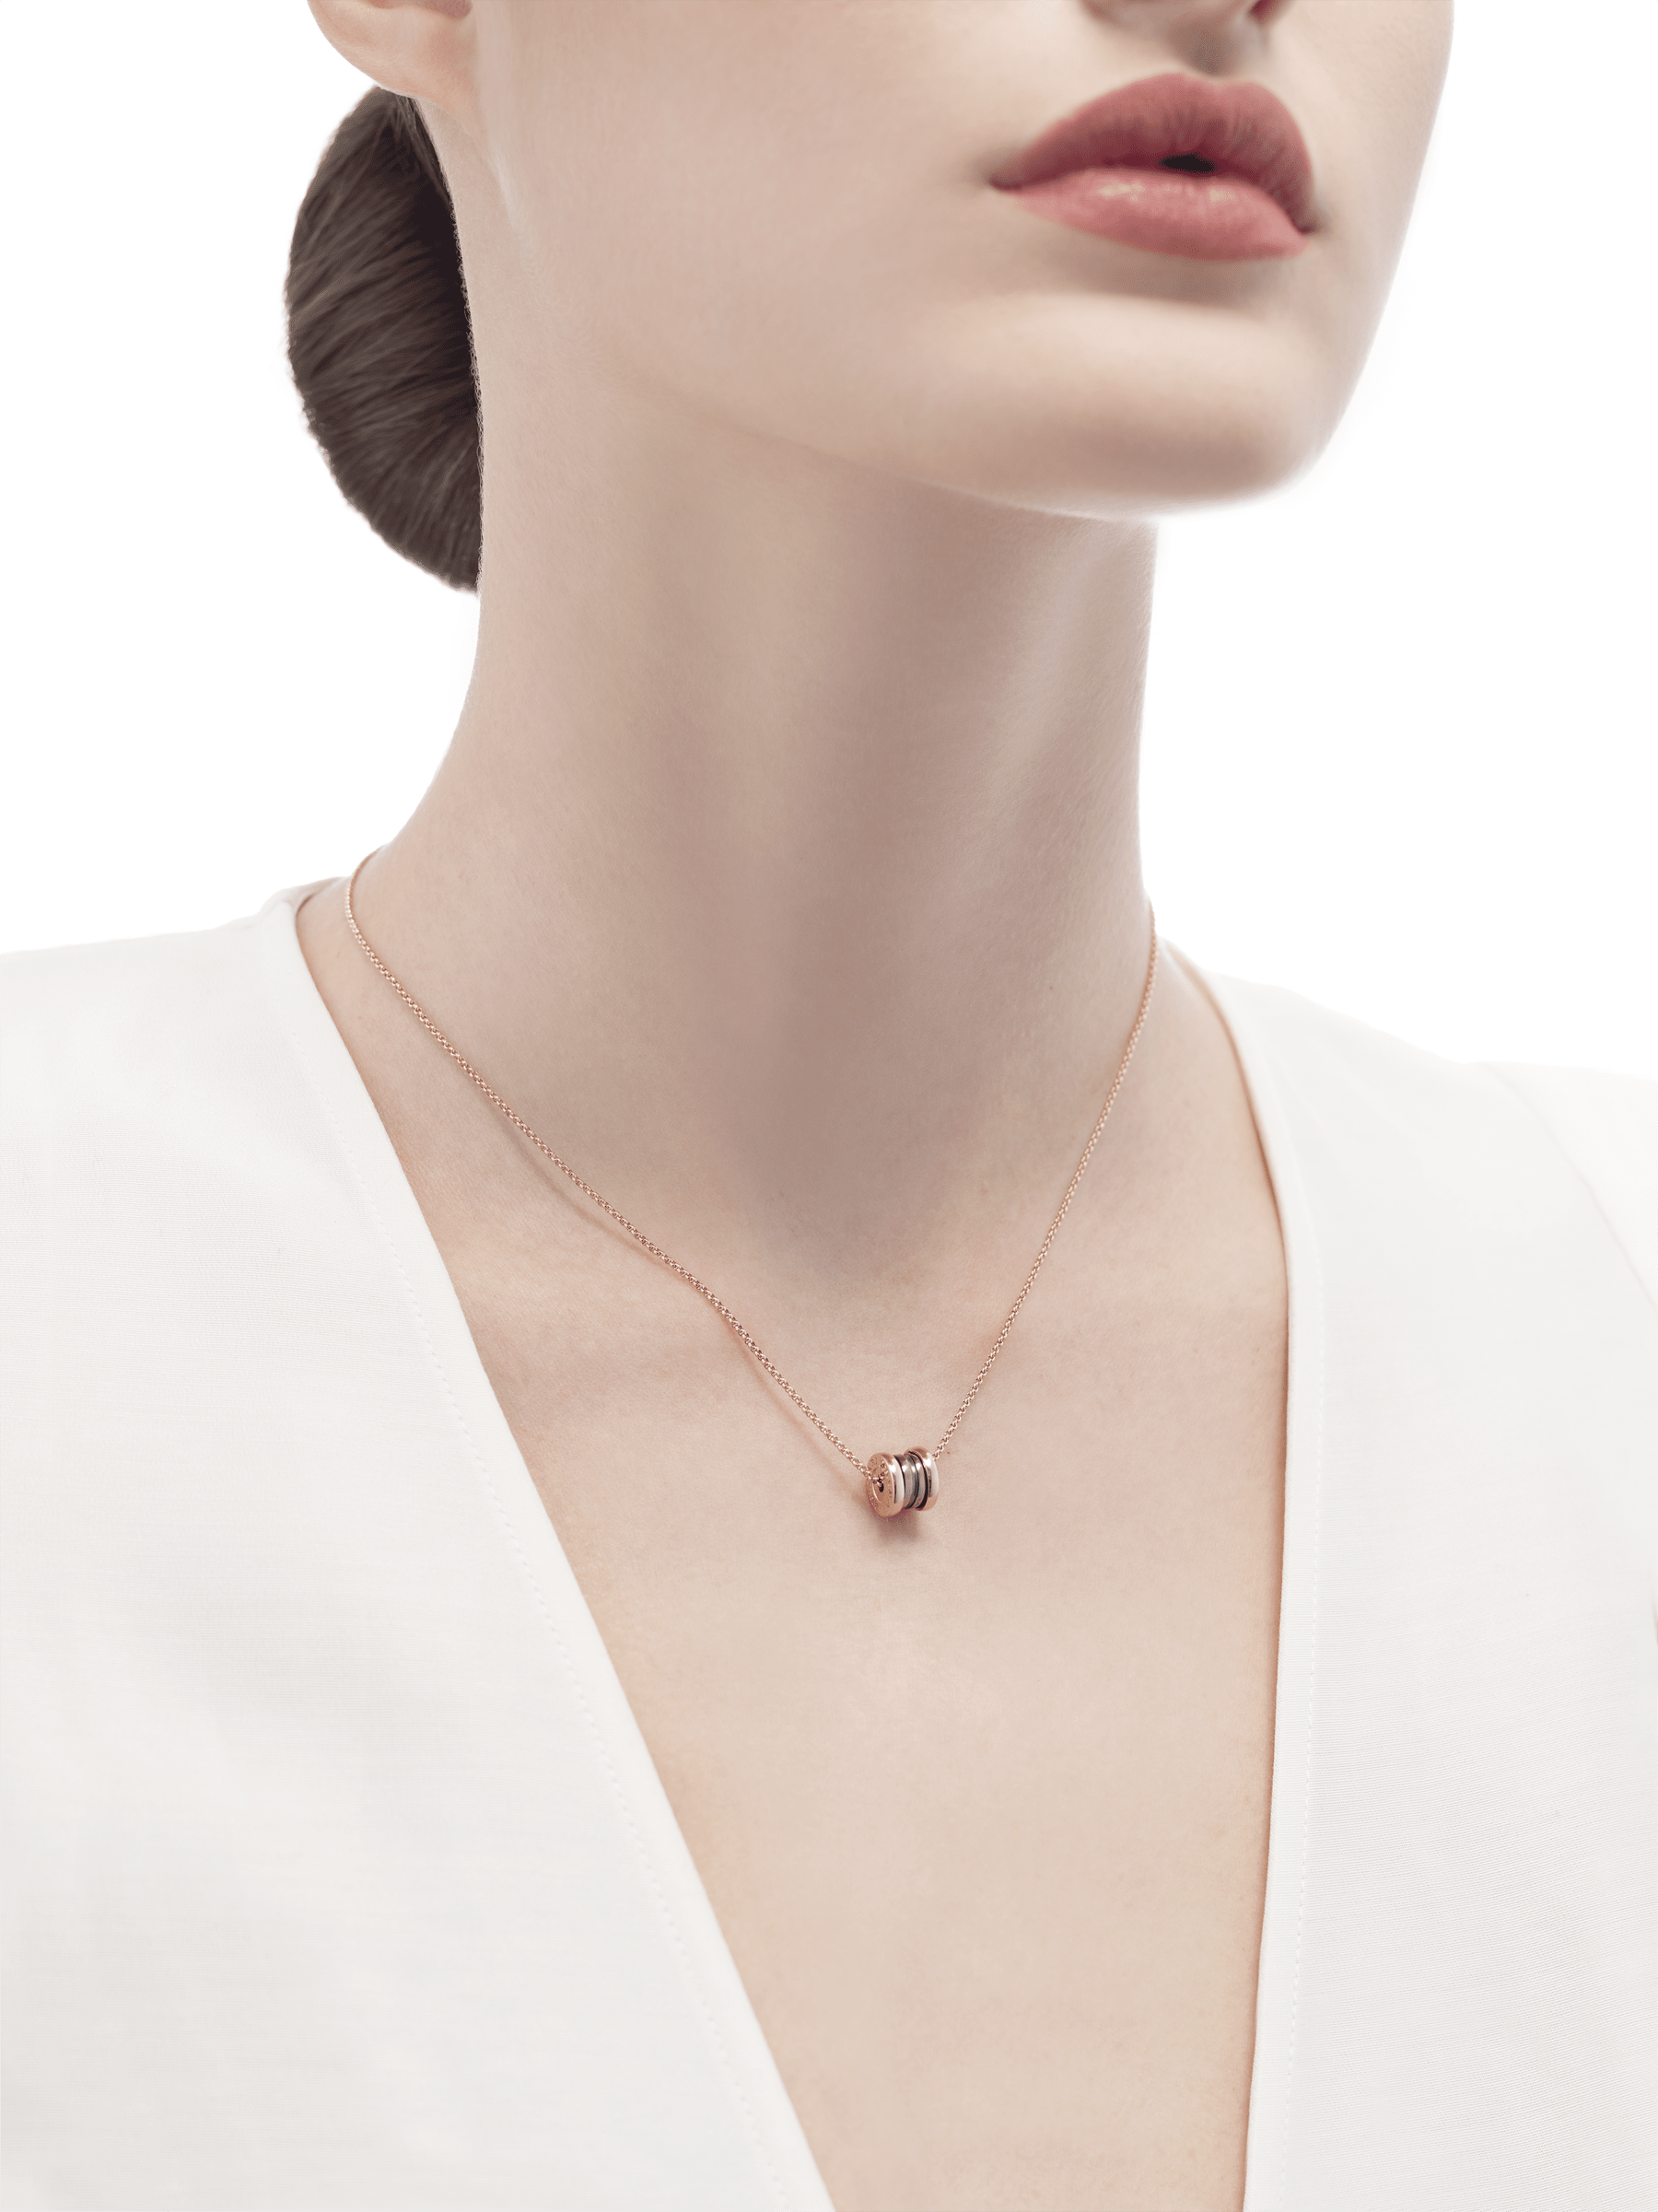 B.zero1 necklace with 18 kt rose gold chain and pendant in 18 kt rose gold and cermet. 353004 image 3